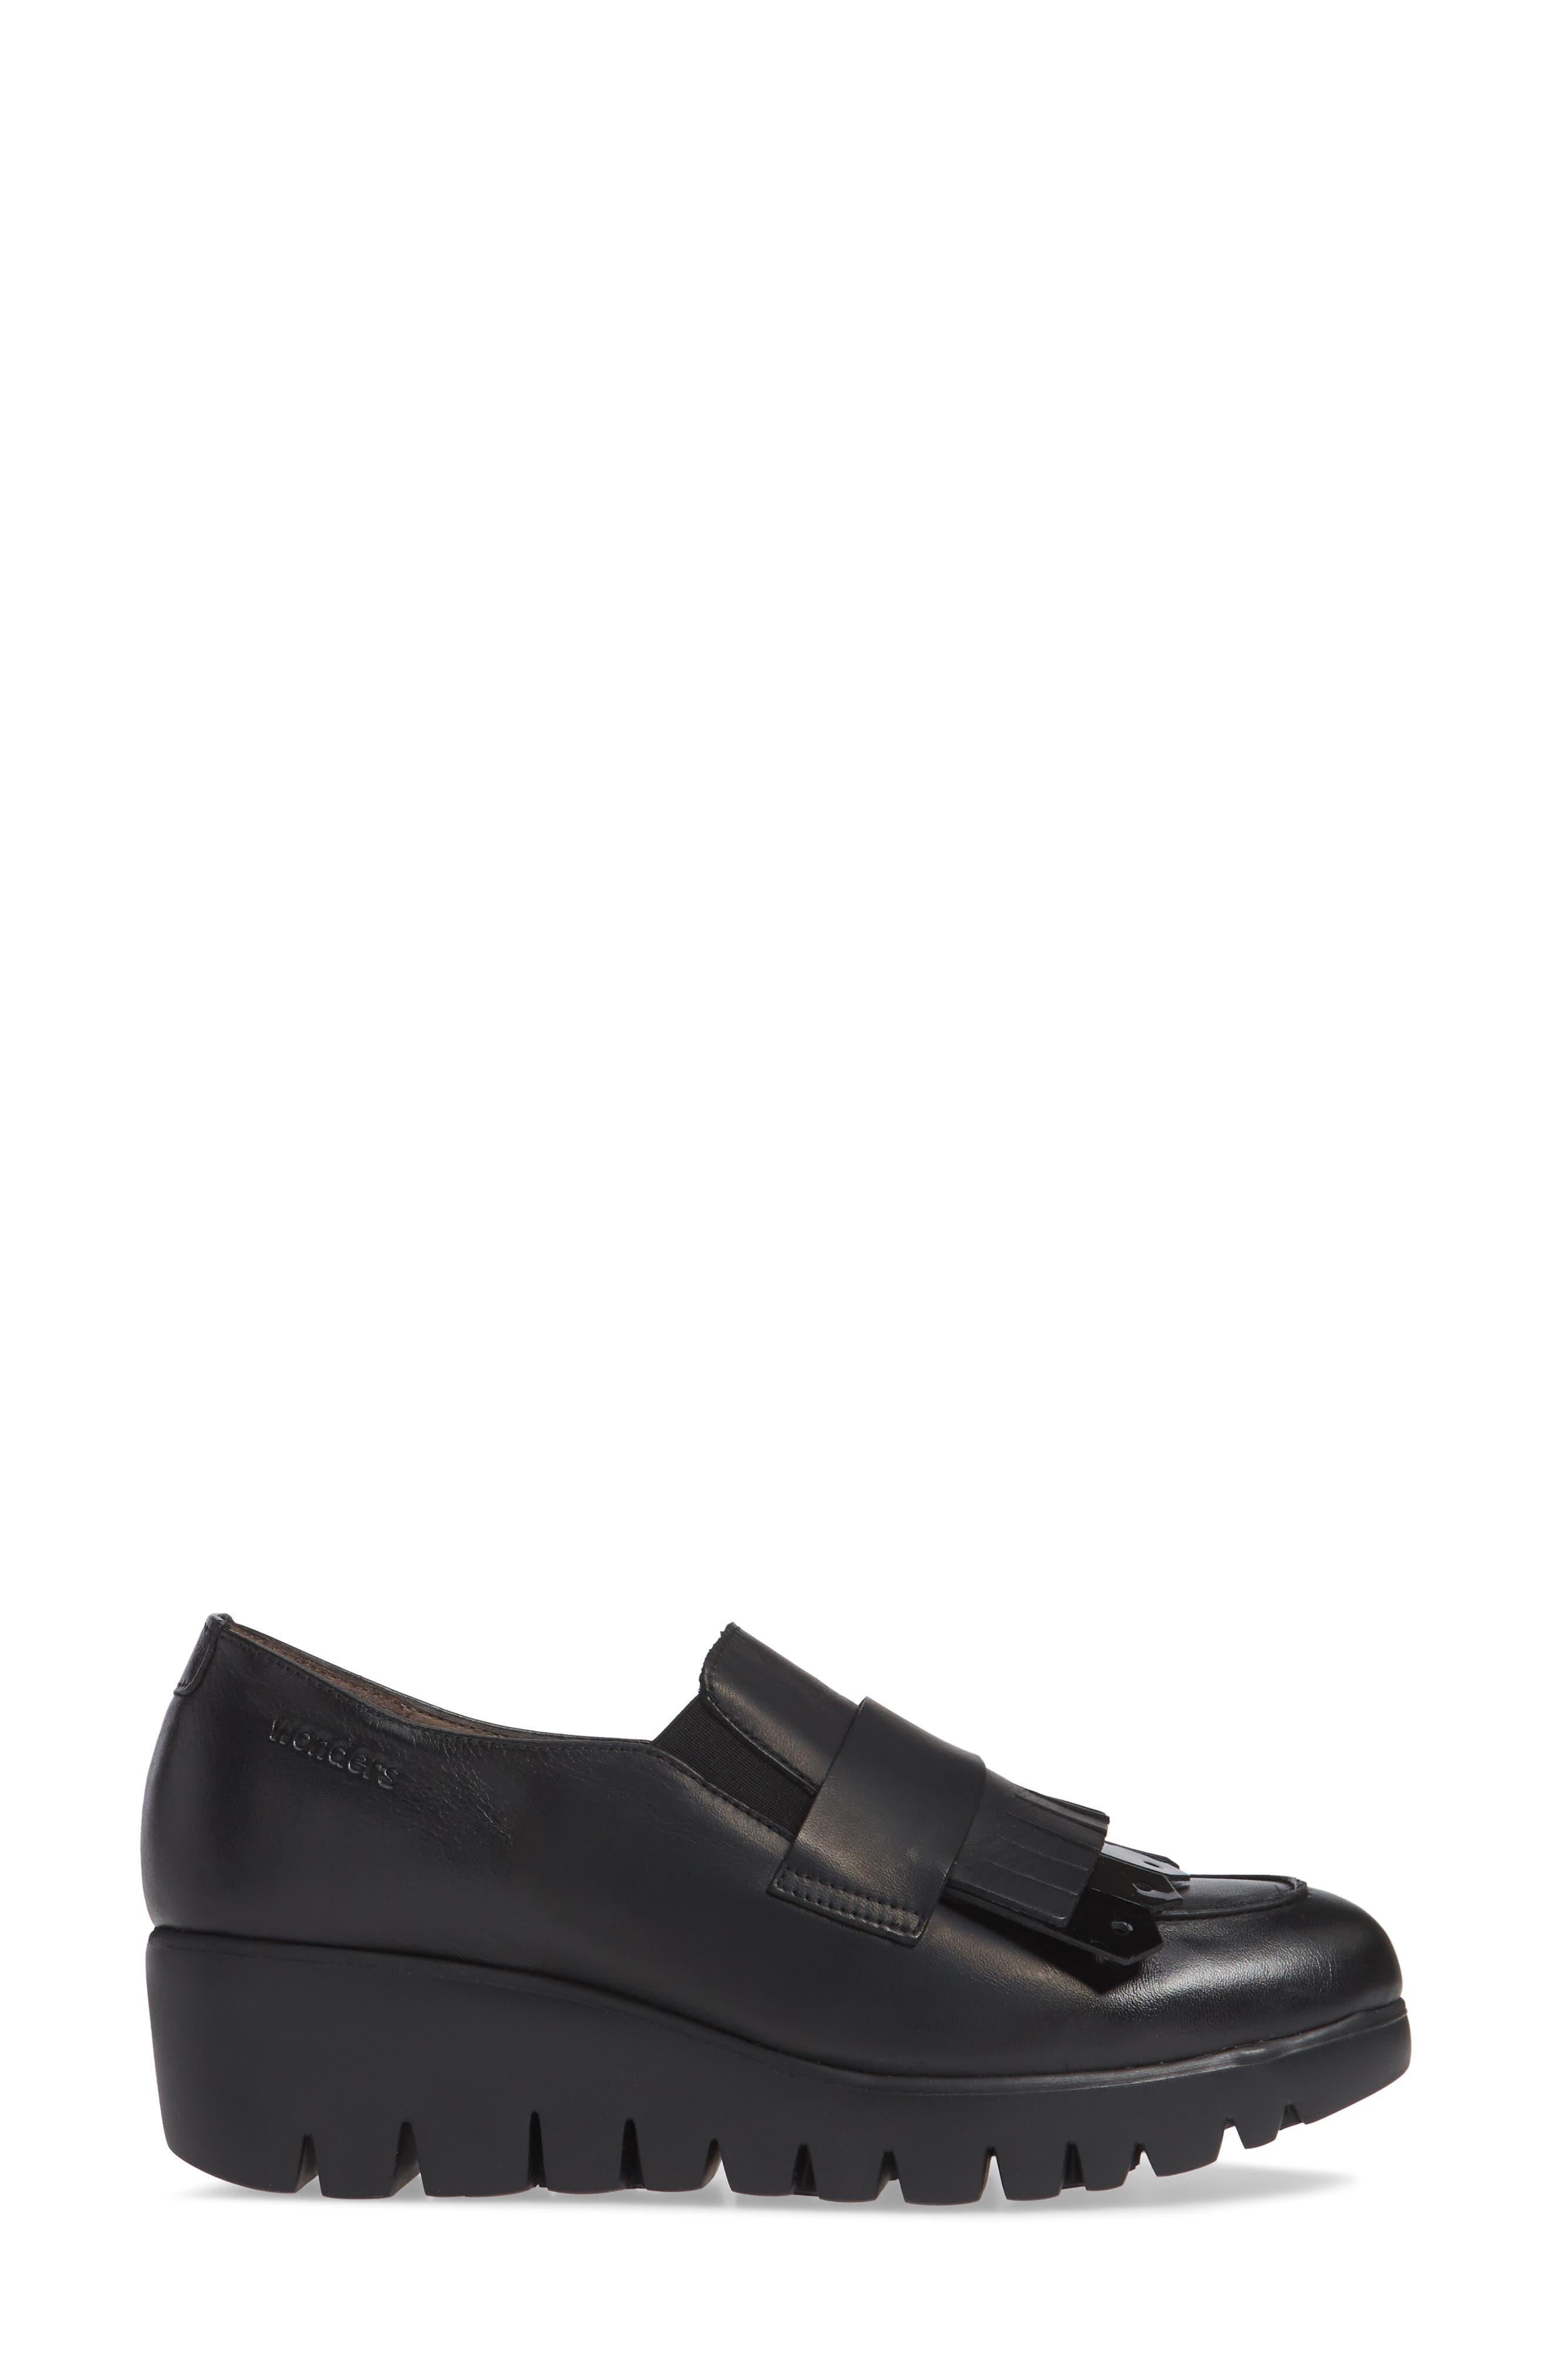 Kiltie Wedge Loafer,                             Alternate thumbnail 3, color,                             BLACK PATENT AND LEATHER